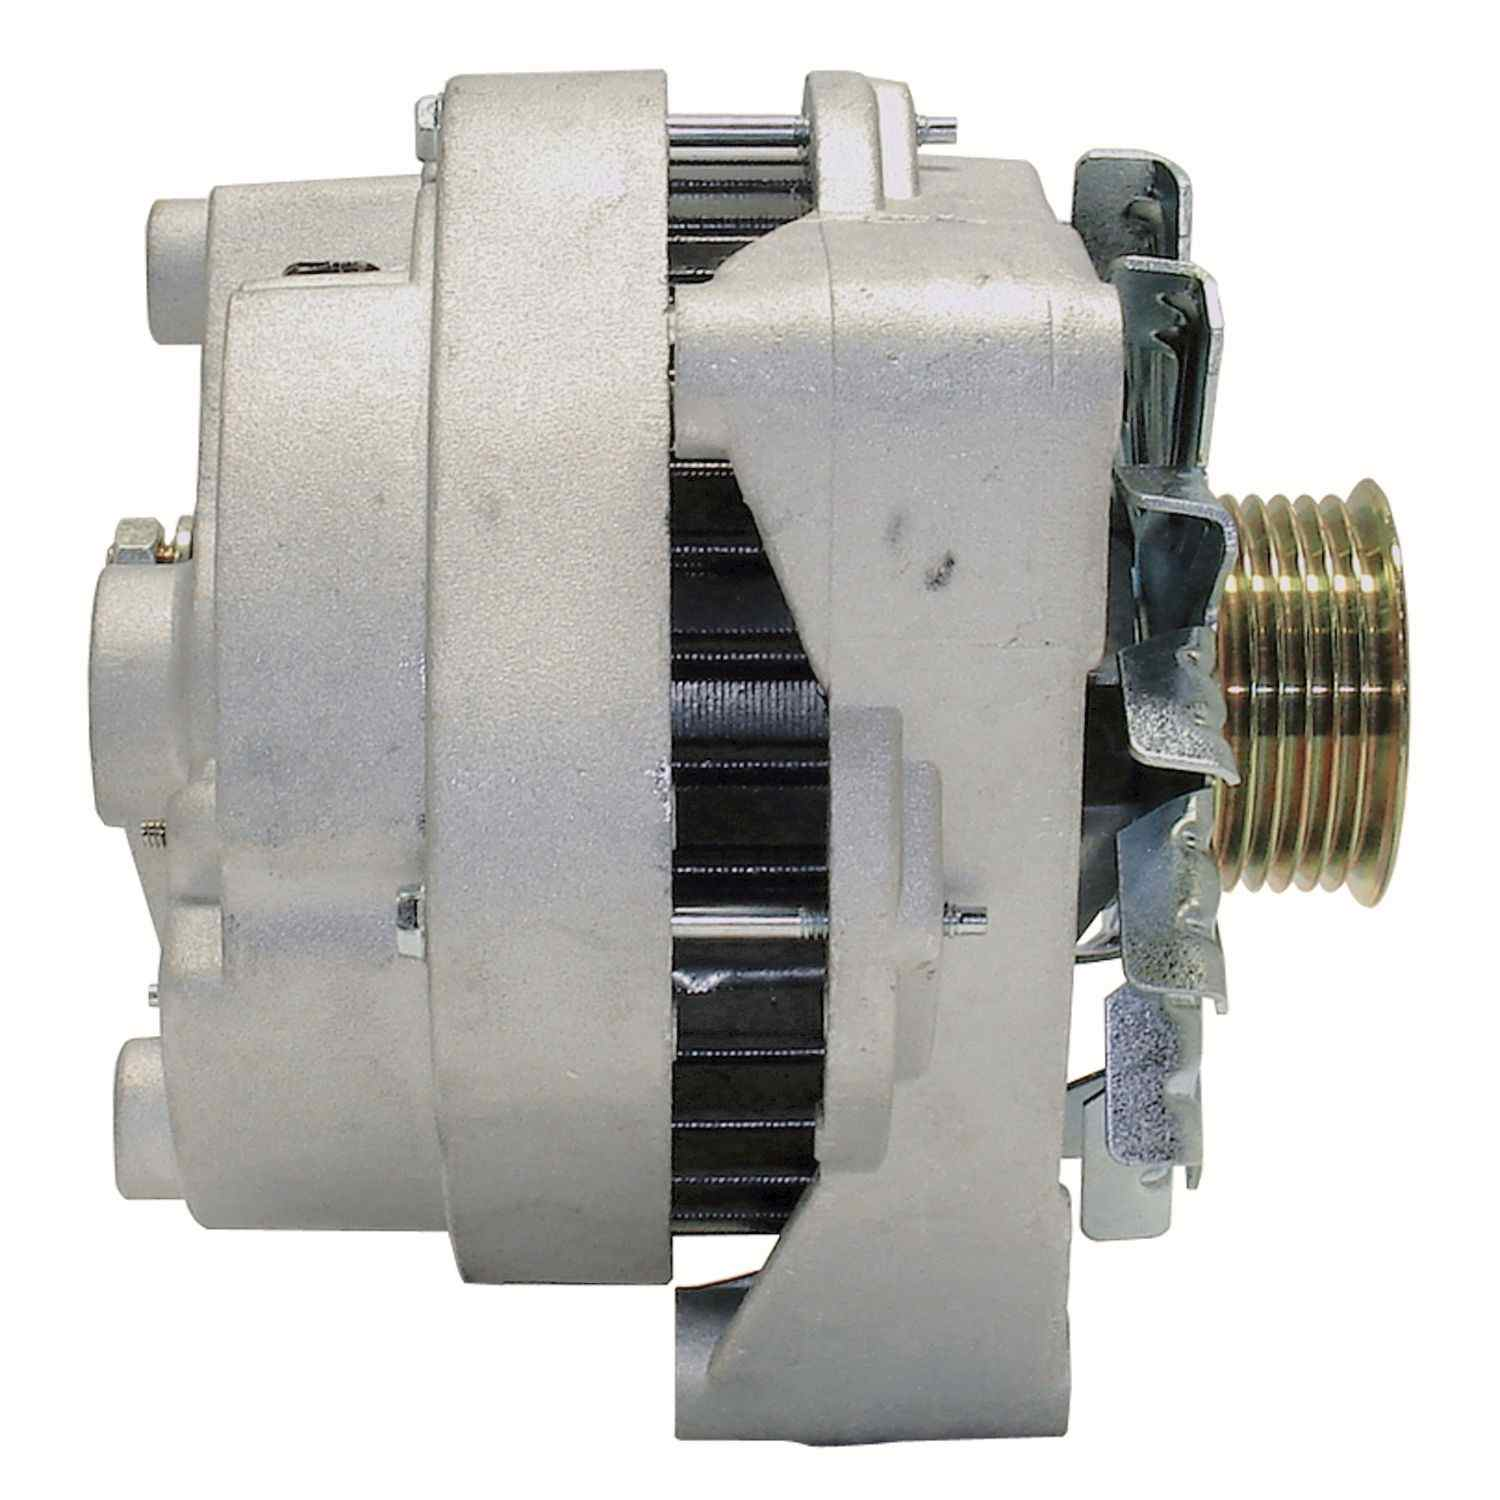 PartsMonkey - ACDELCO PROFESSIONAL CANADA Reman Alternator